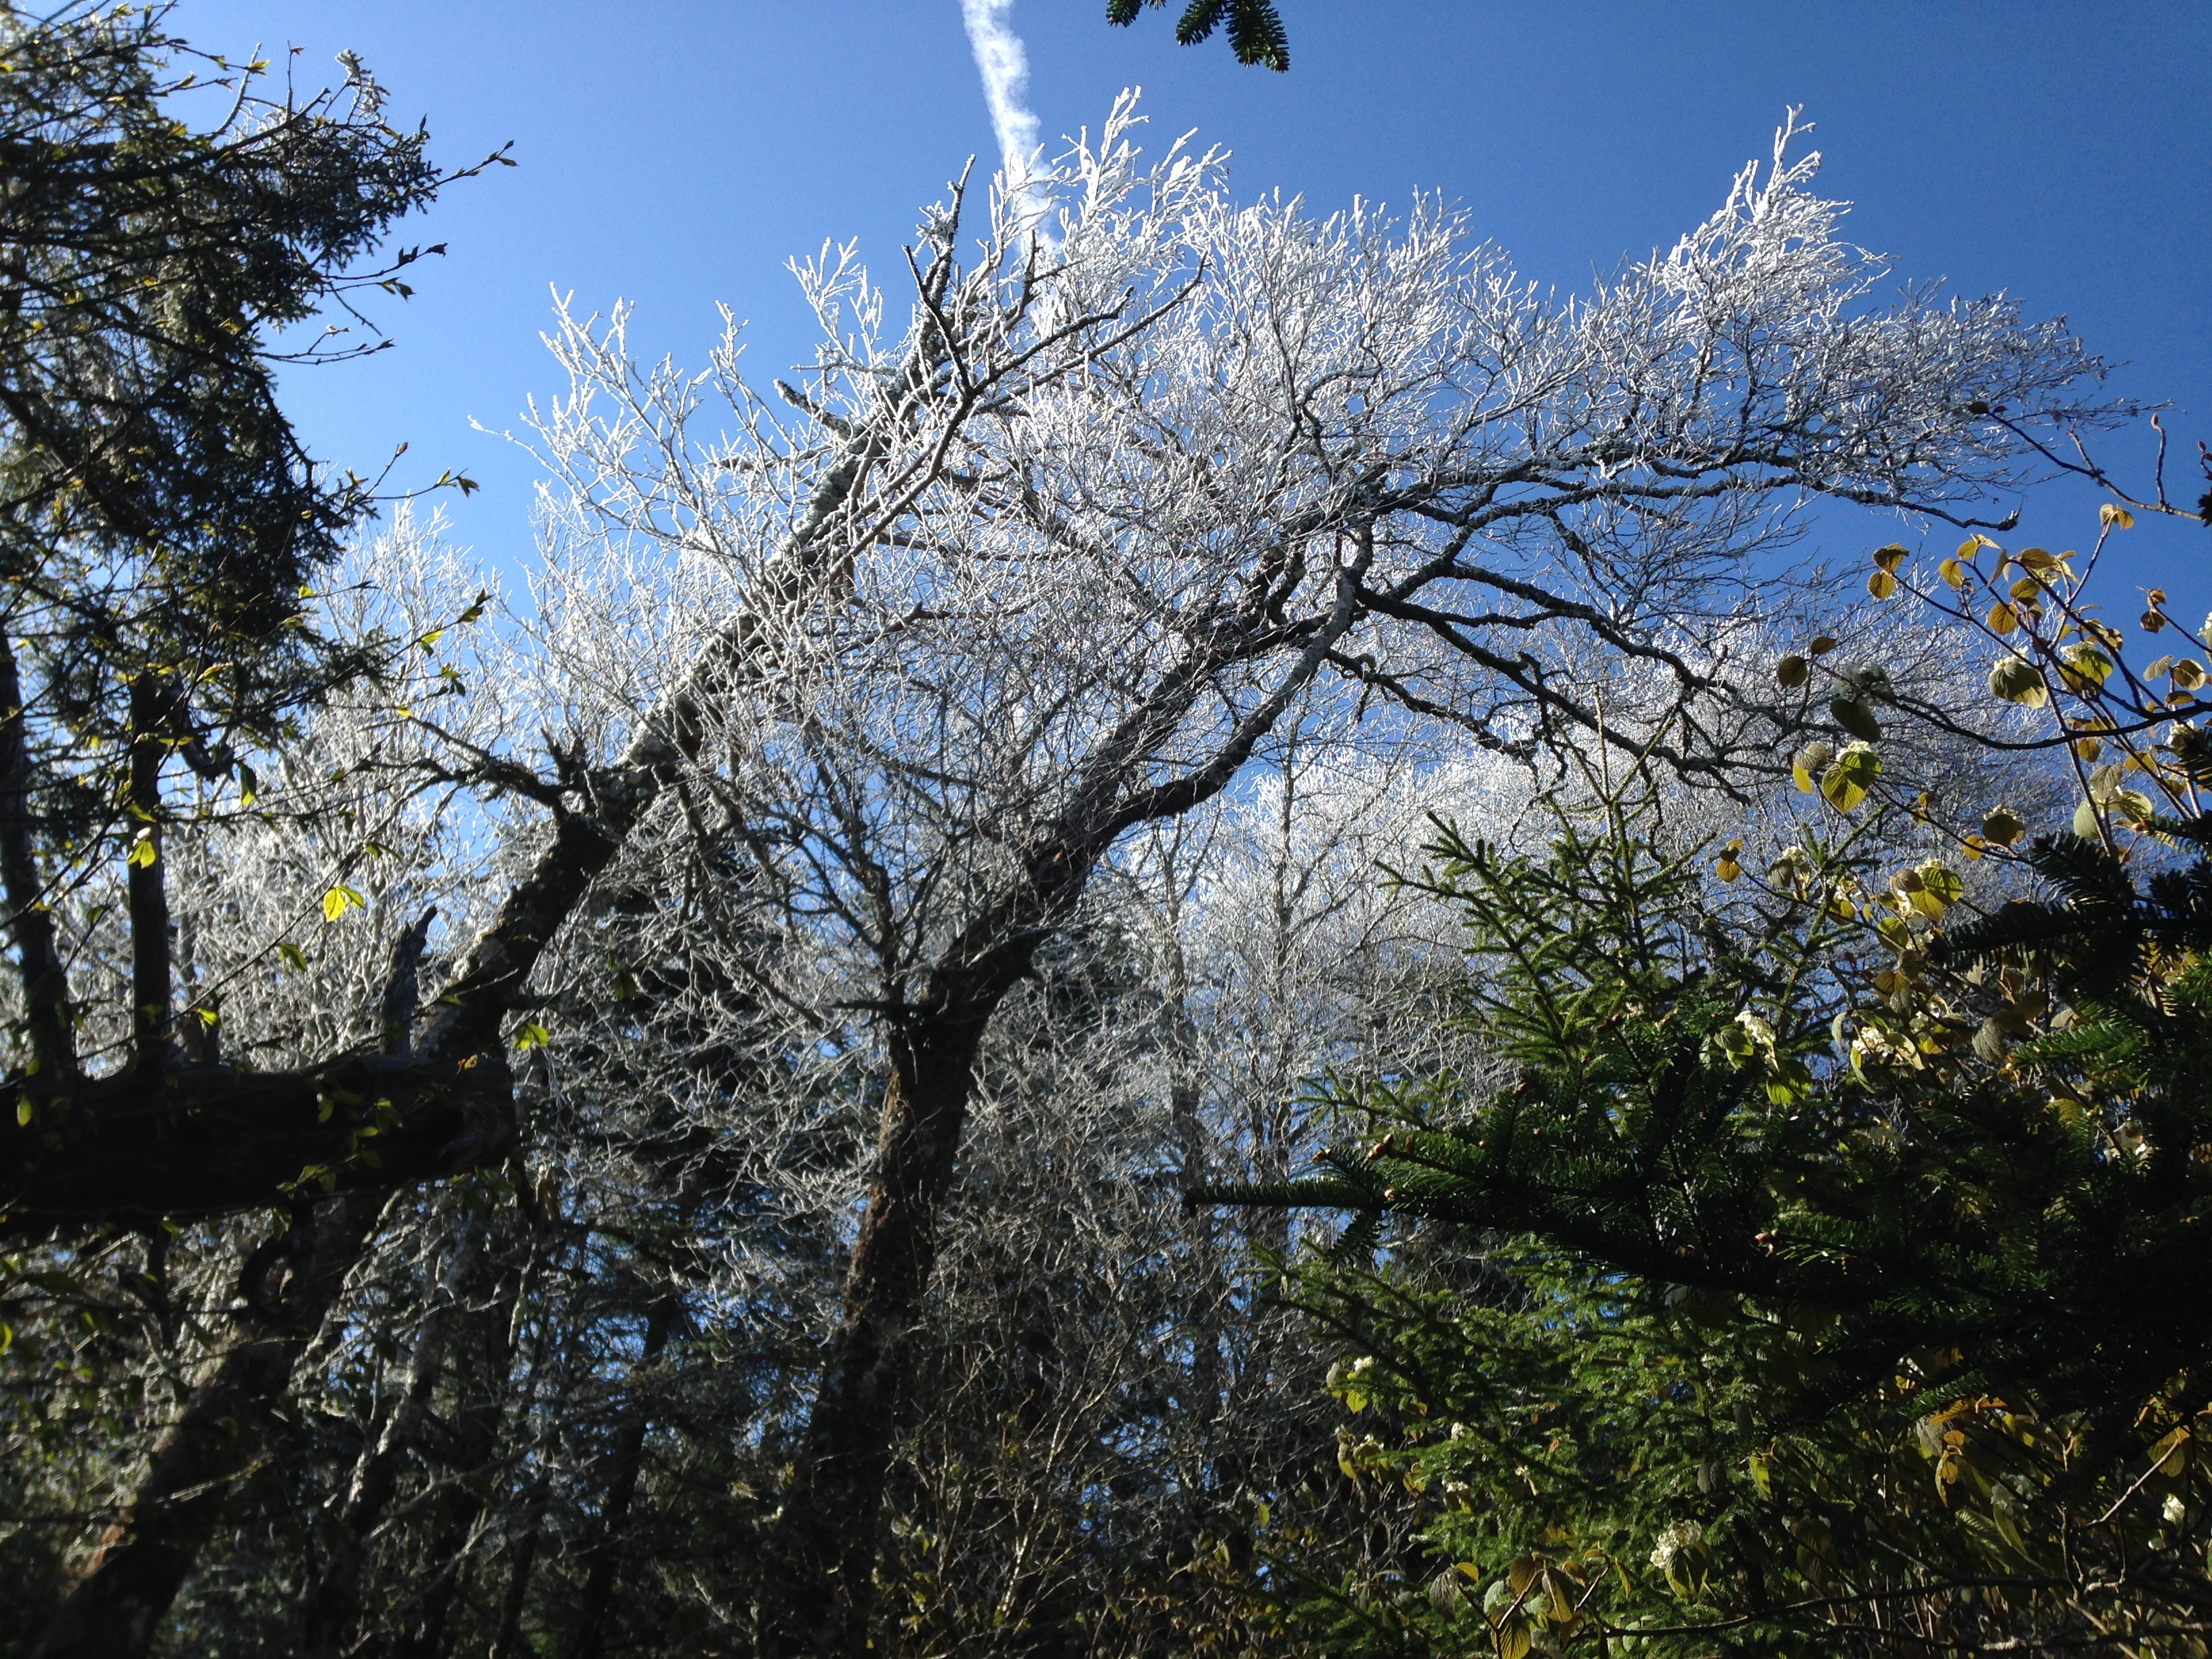 Ice on the pines. Just another May in the Smokies.